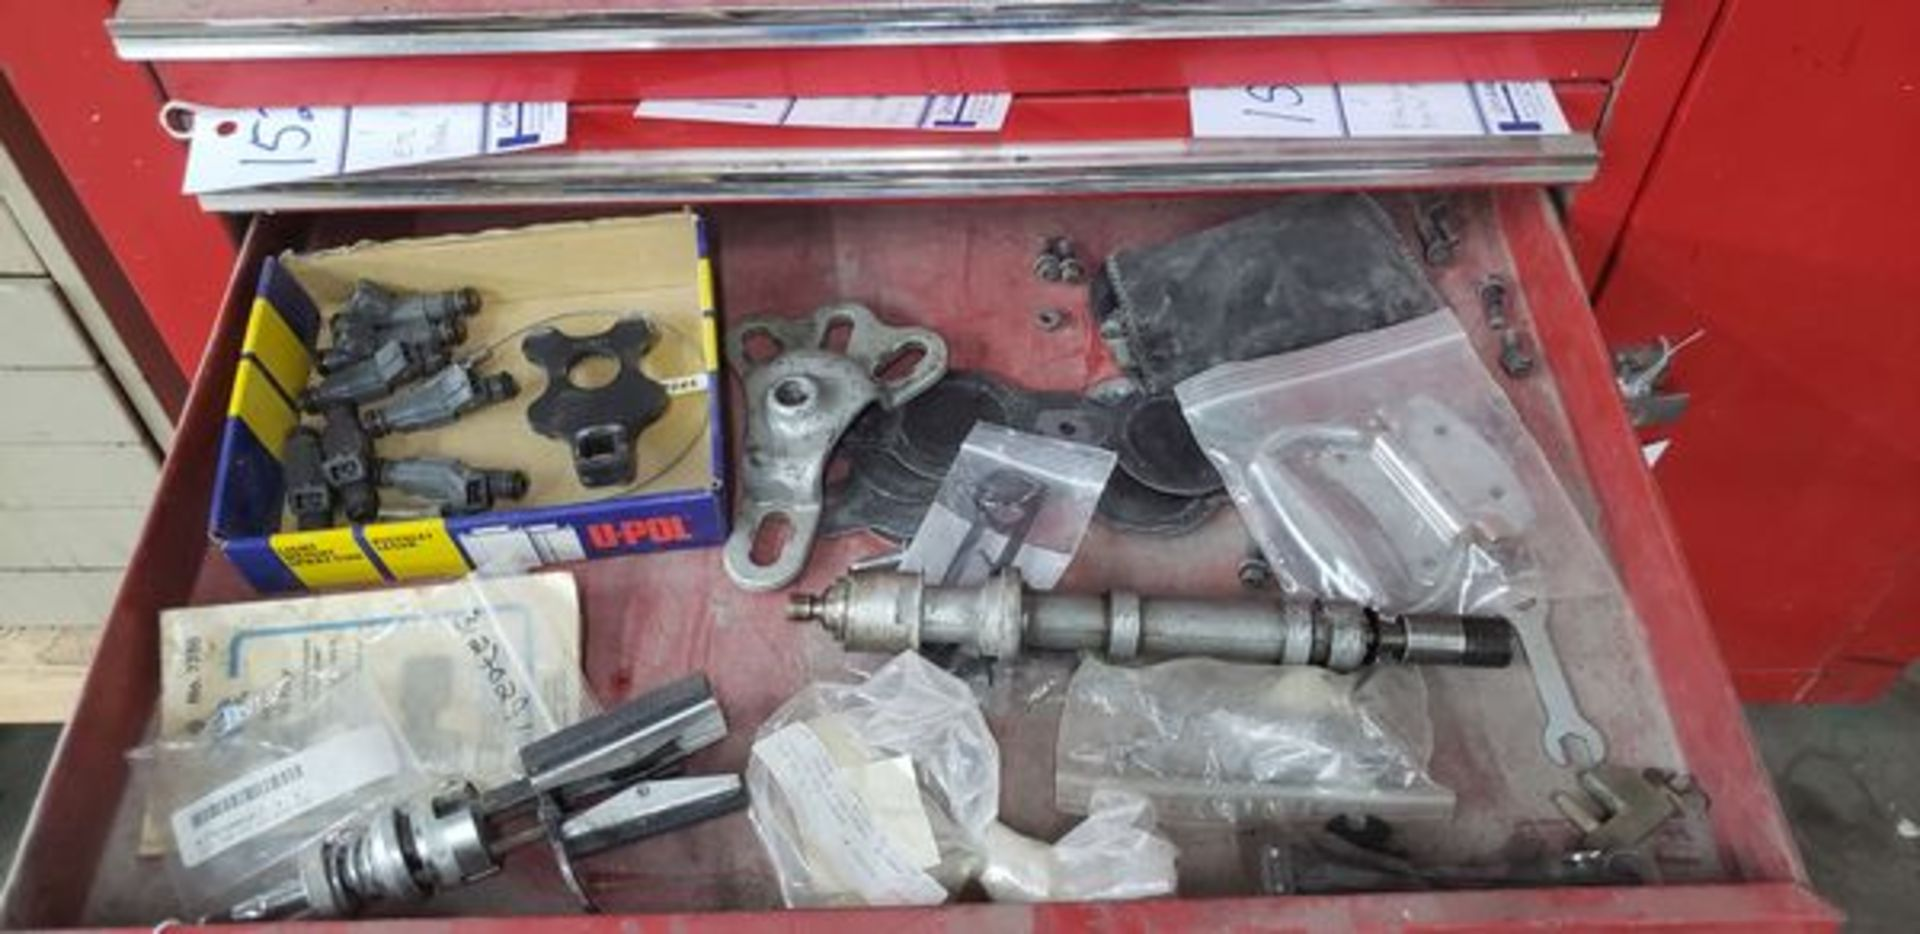 LOT OF MISC TOOLS AND PARTS IN DRAWER